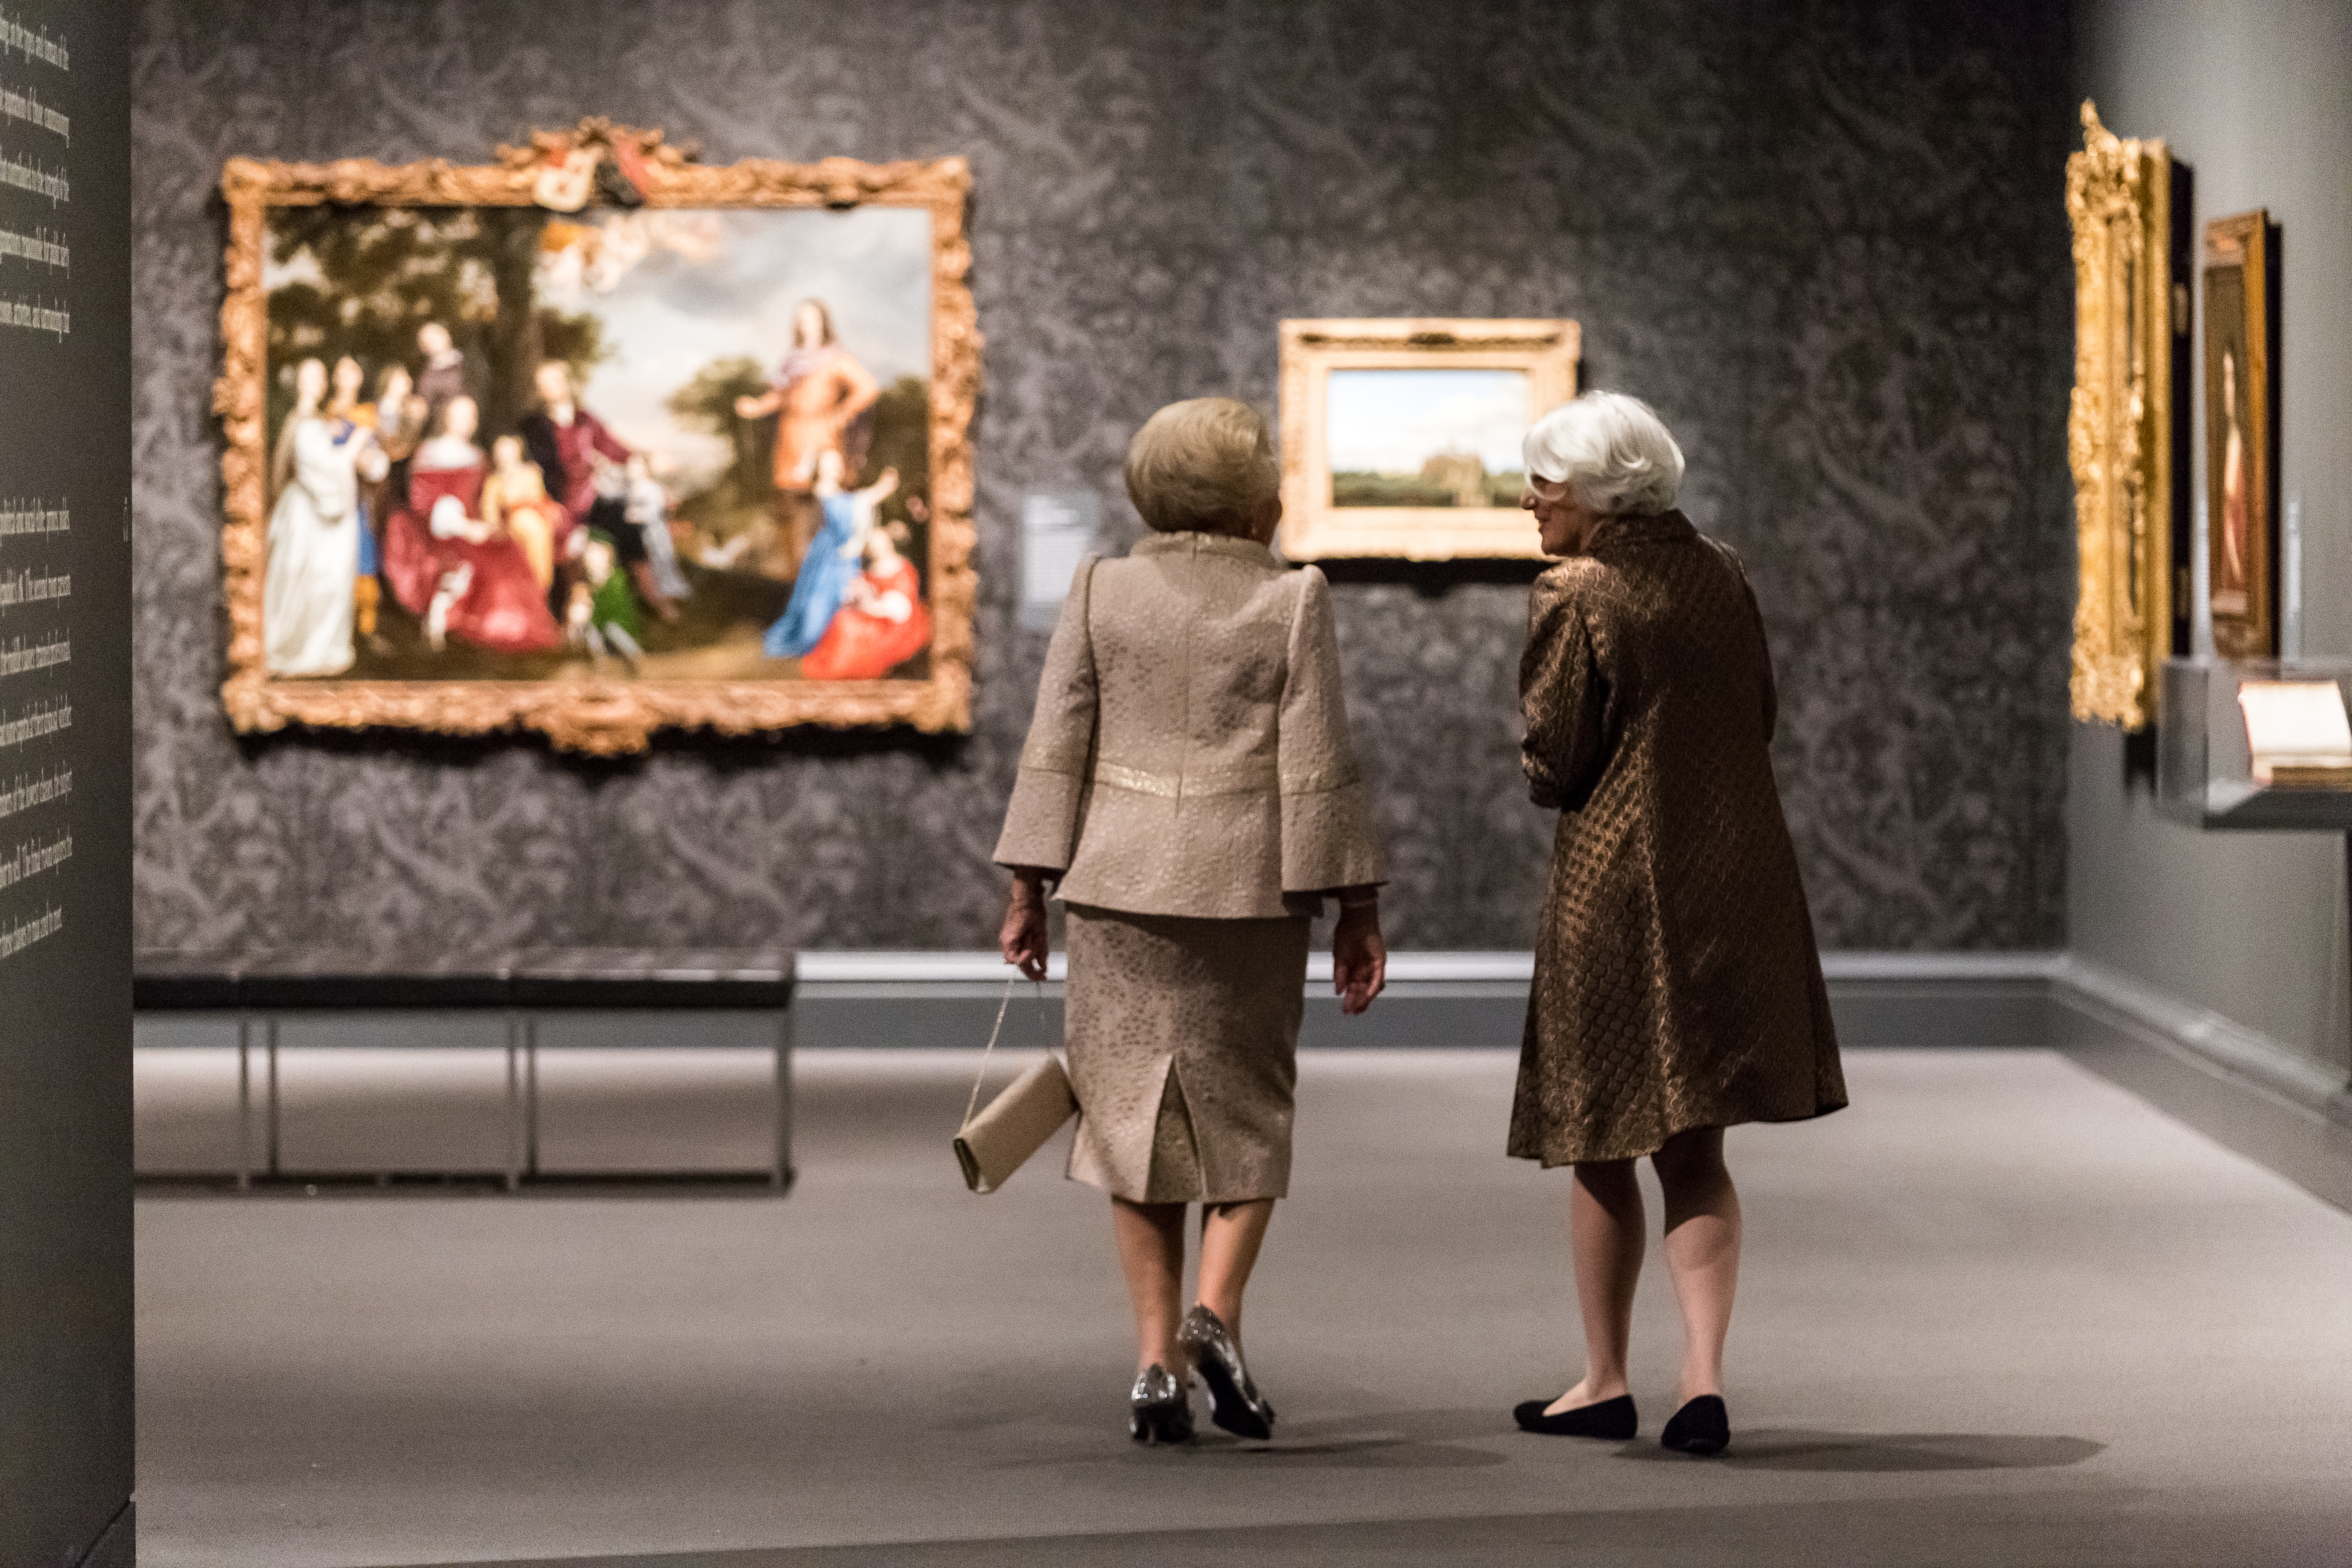 Her Royal Highness Princess Beatrix of the Netherlands and Museum of Fine Art Senior Curator Ronni Baer view